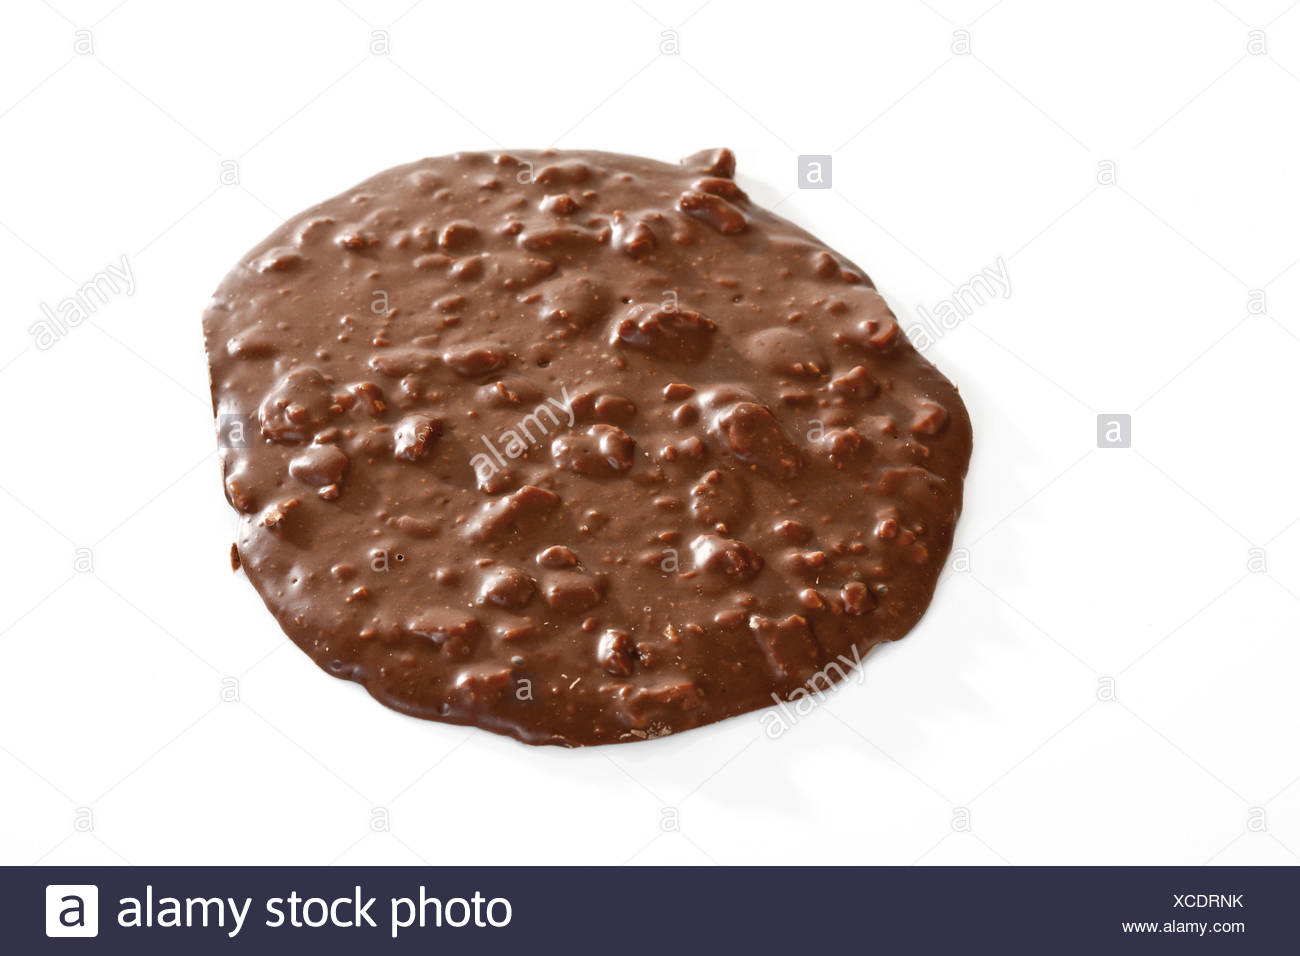 Chocolate Florentine Cookie - Stock Image